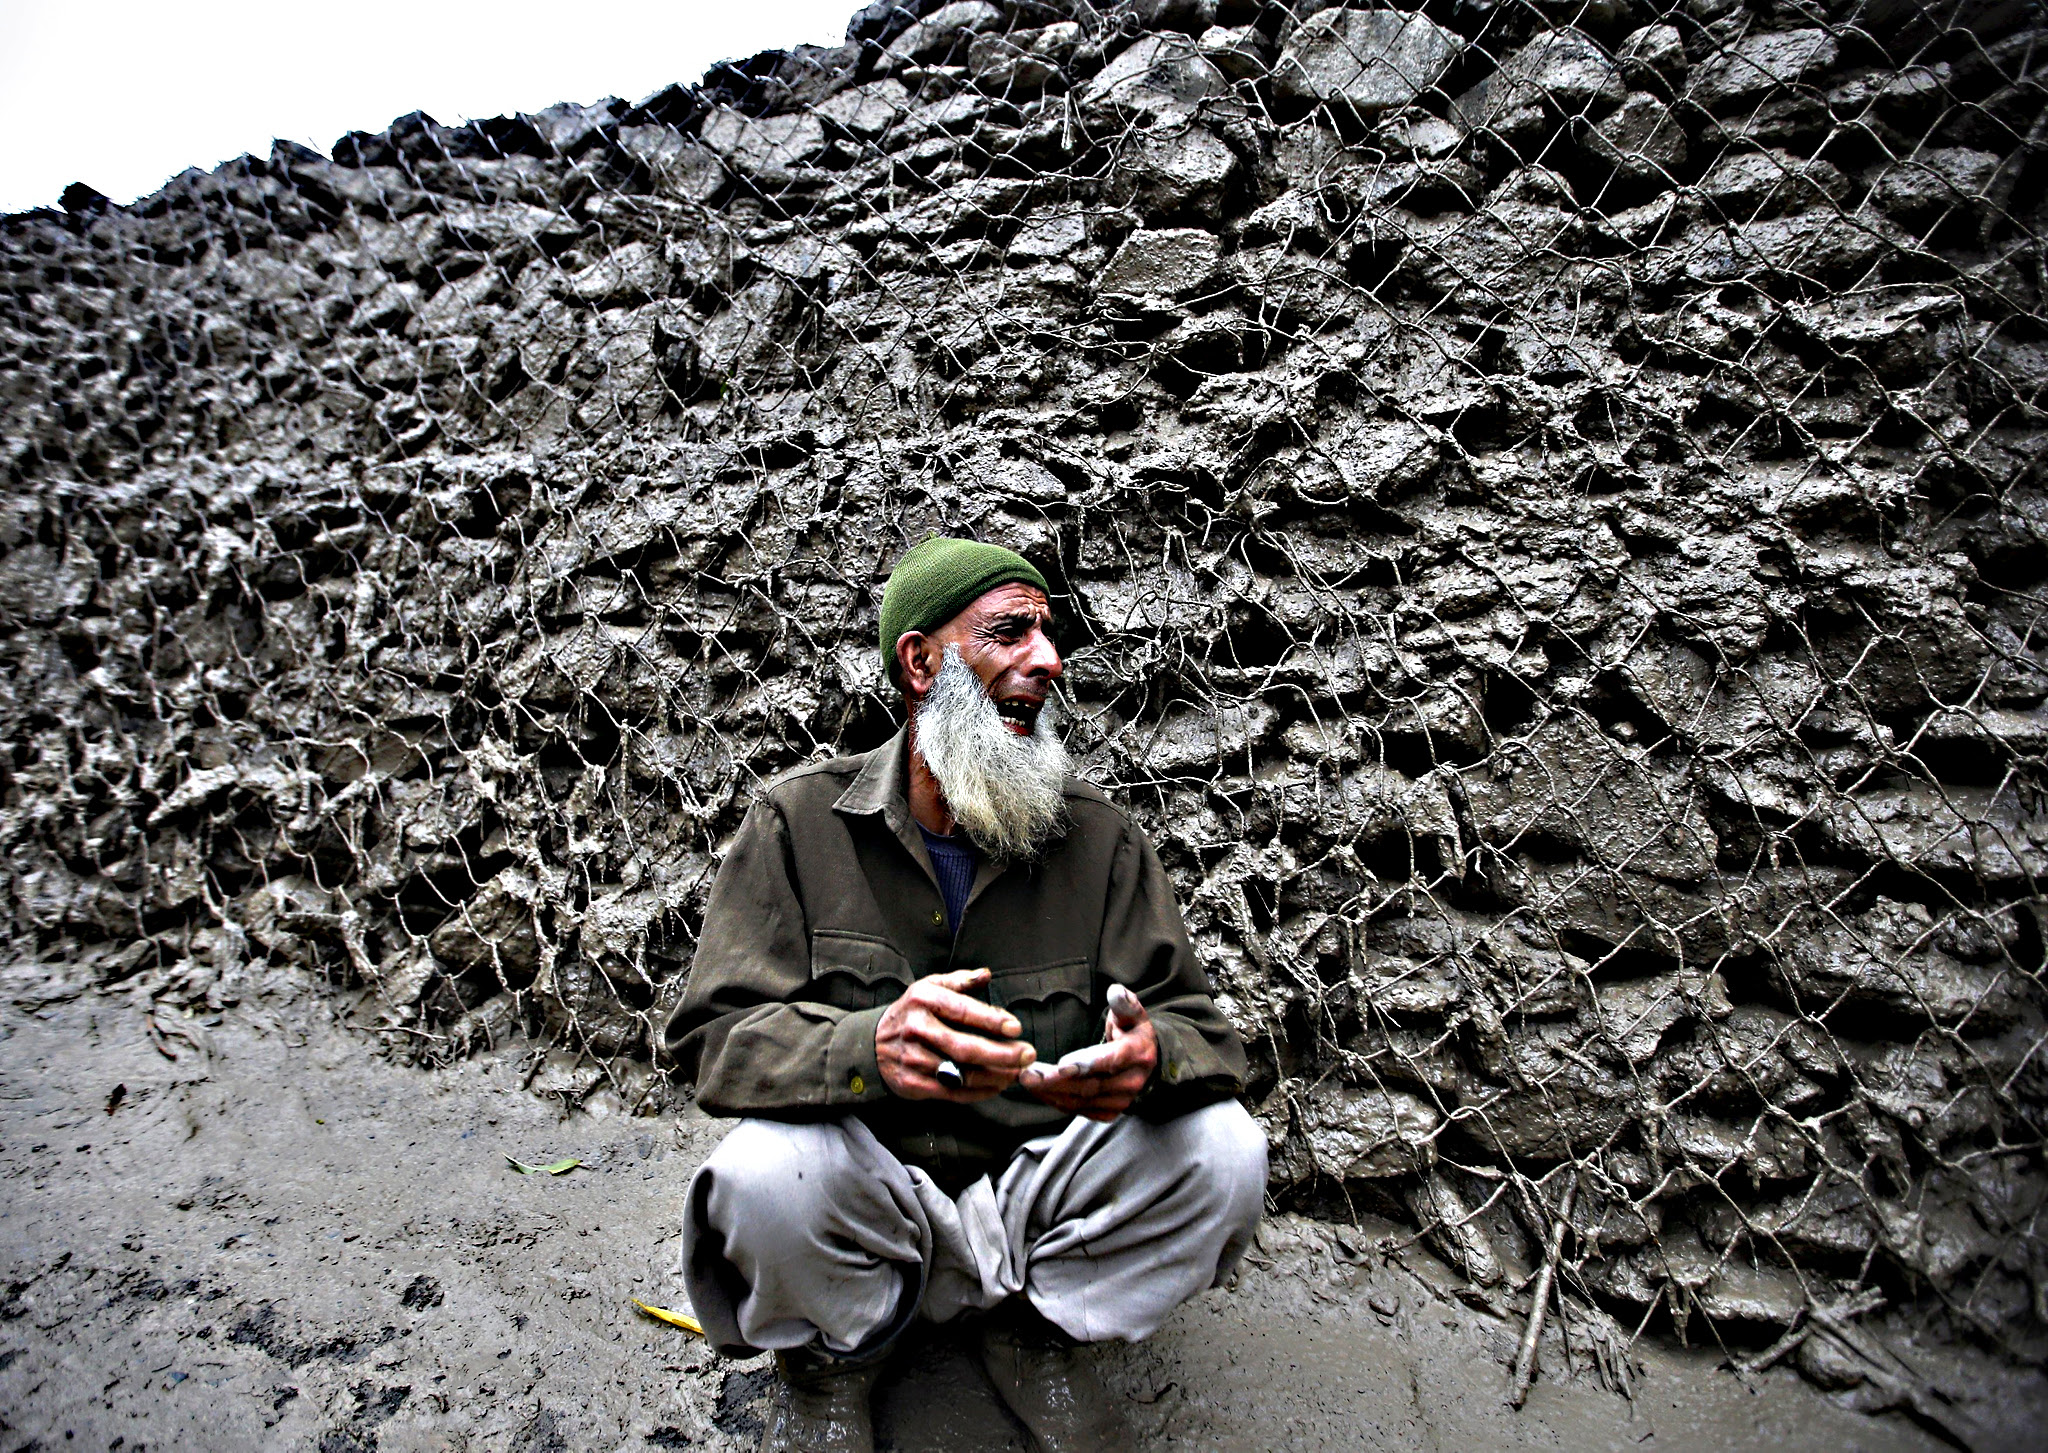 A Kashmiri villager cries for his missing relative after a cloud burst at Kullan village in Ganderbal district, on Friday. At least four people were killed in a series of cloud bursts that were reported from several parts of Kashmir during heavy rainfall, local media reported on Friday